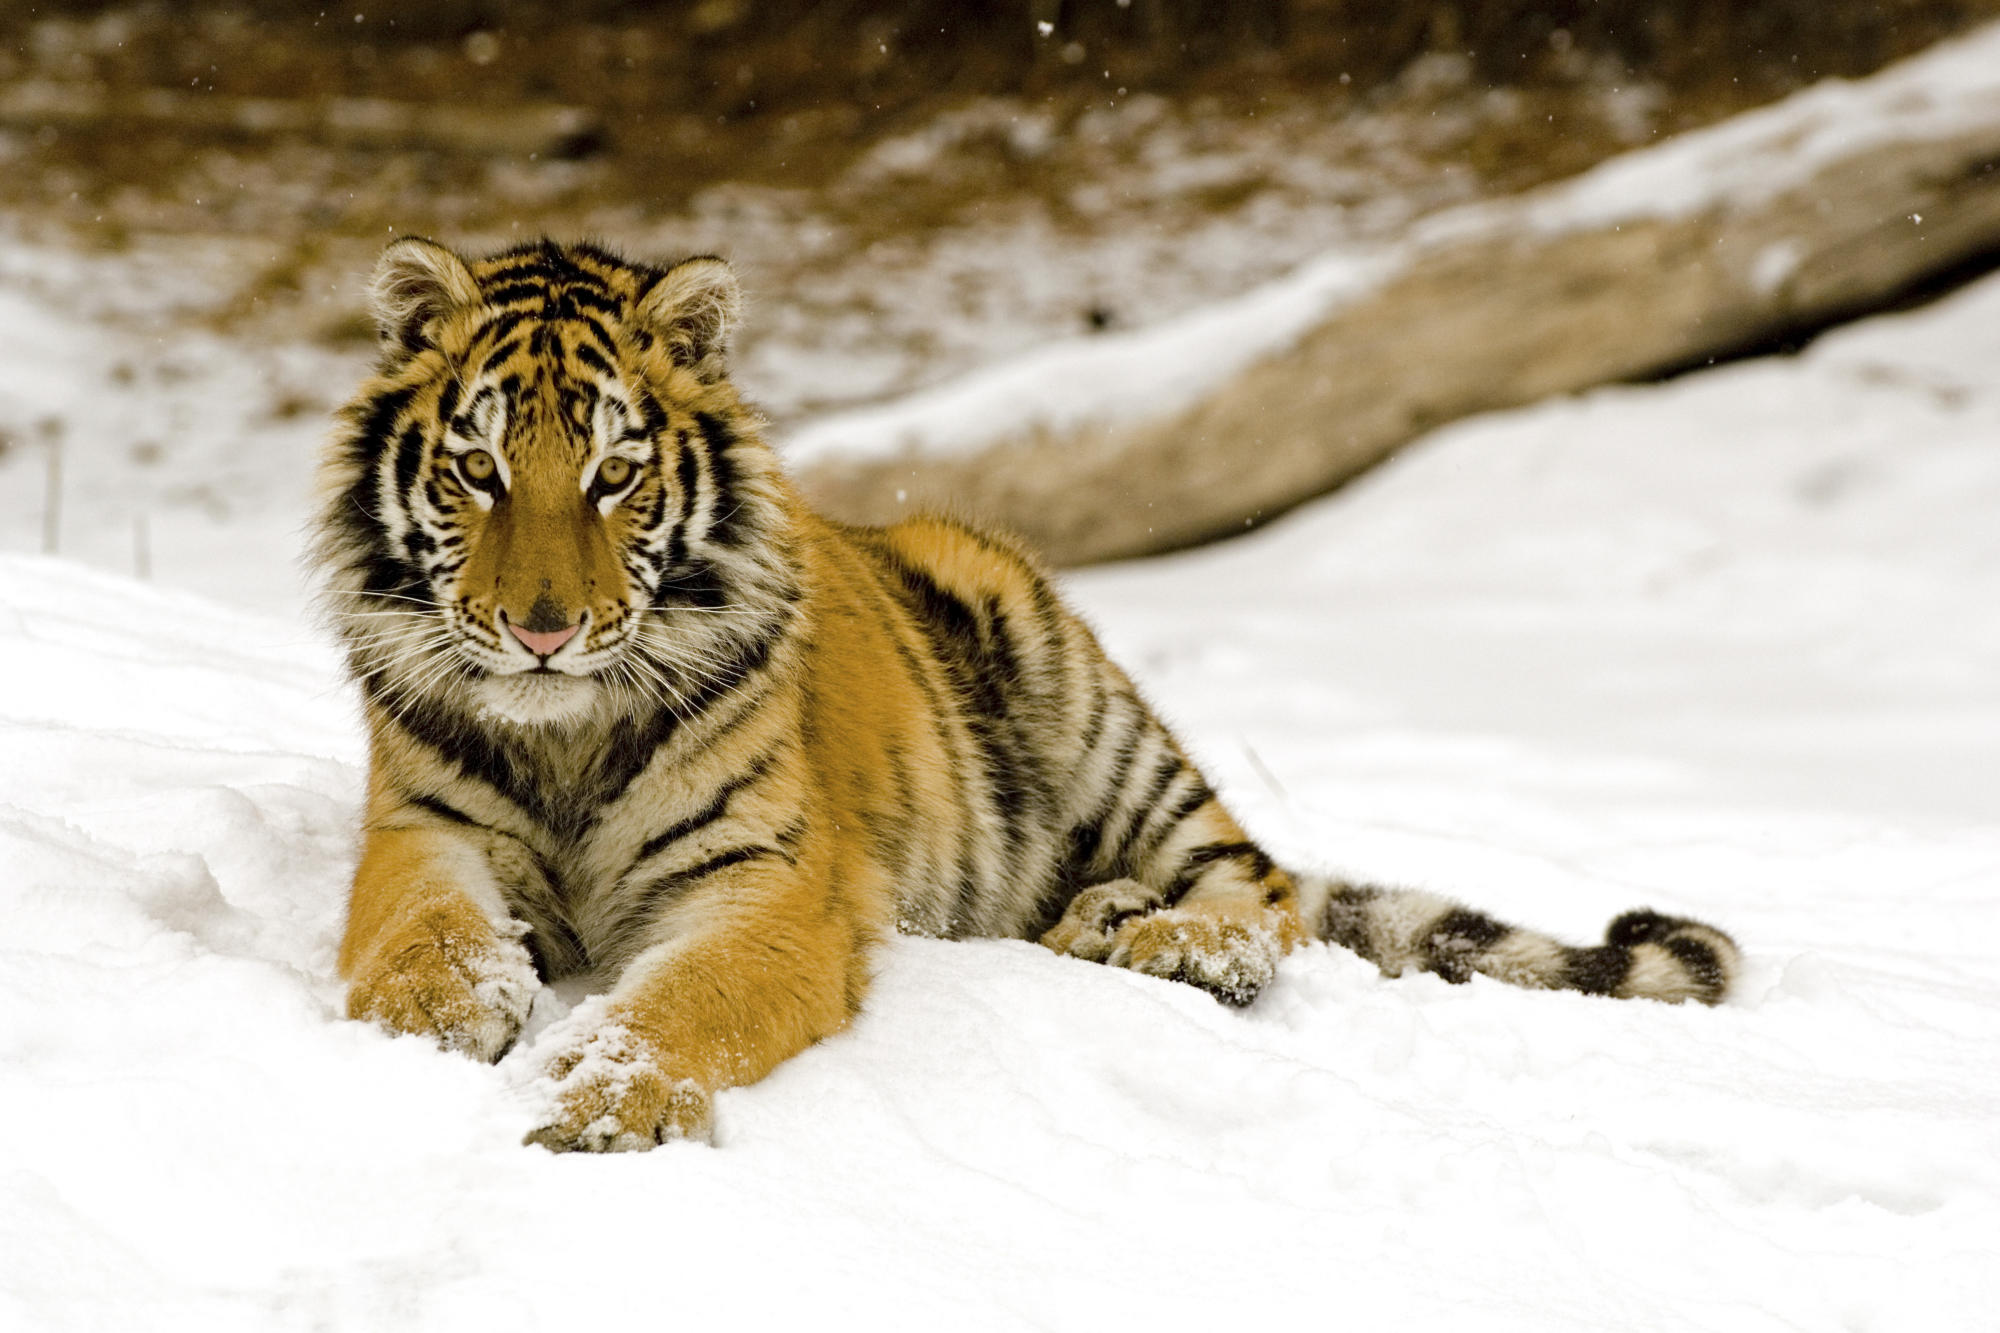 Snowy Afternoon Tiger 333.66 Kb